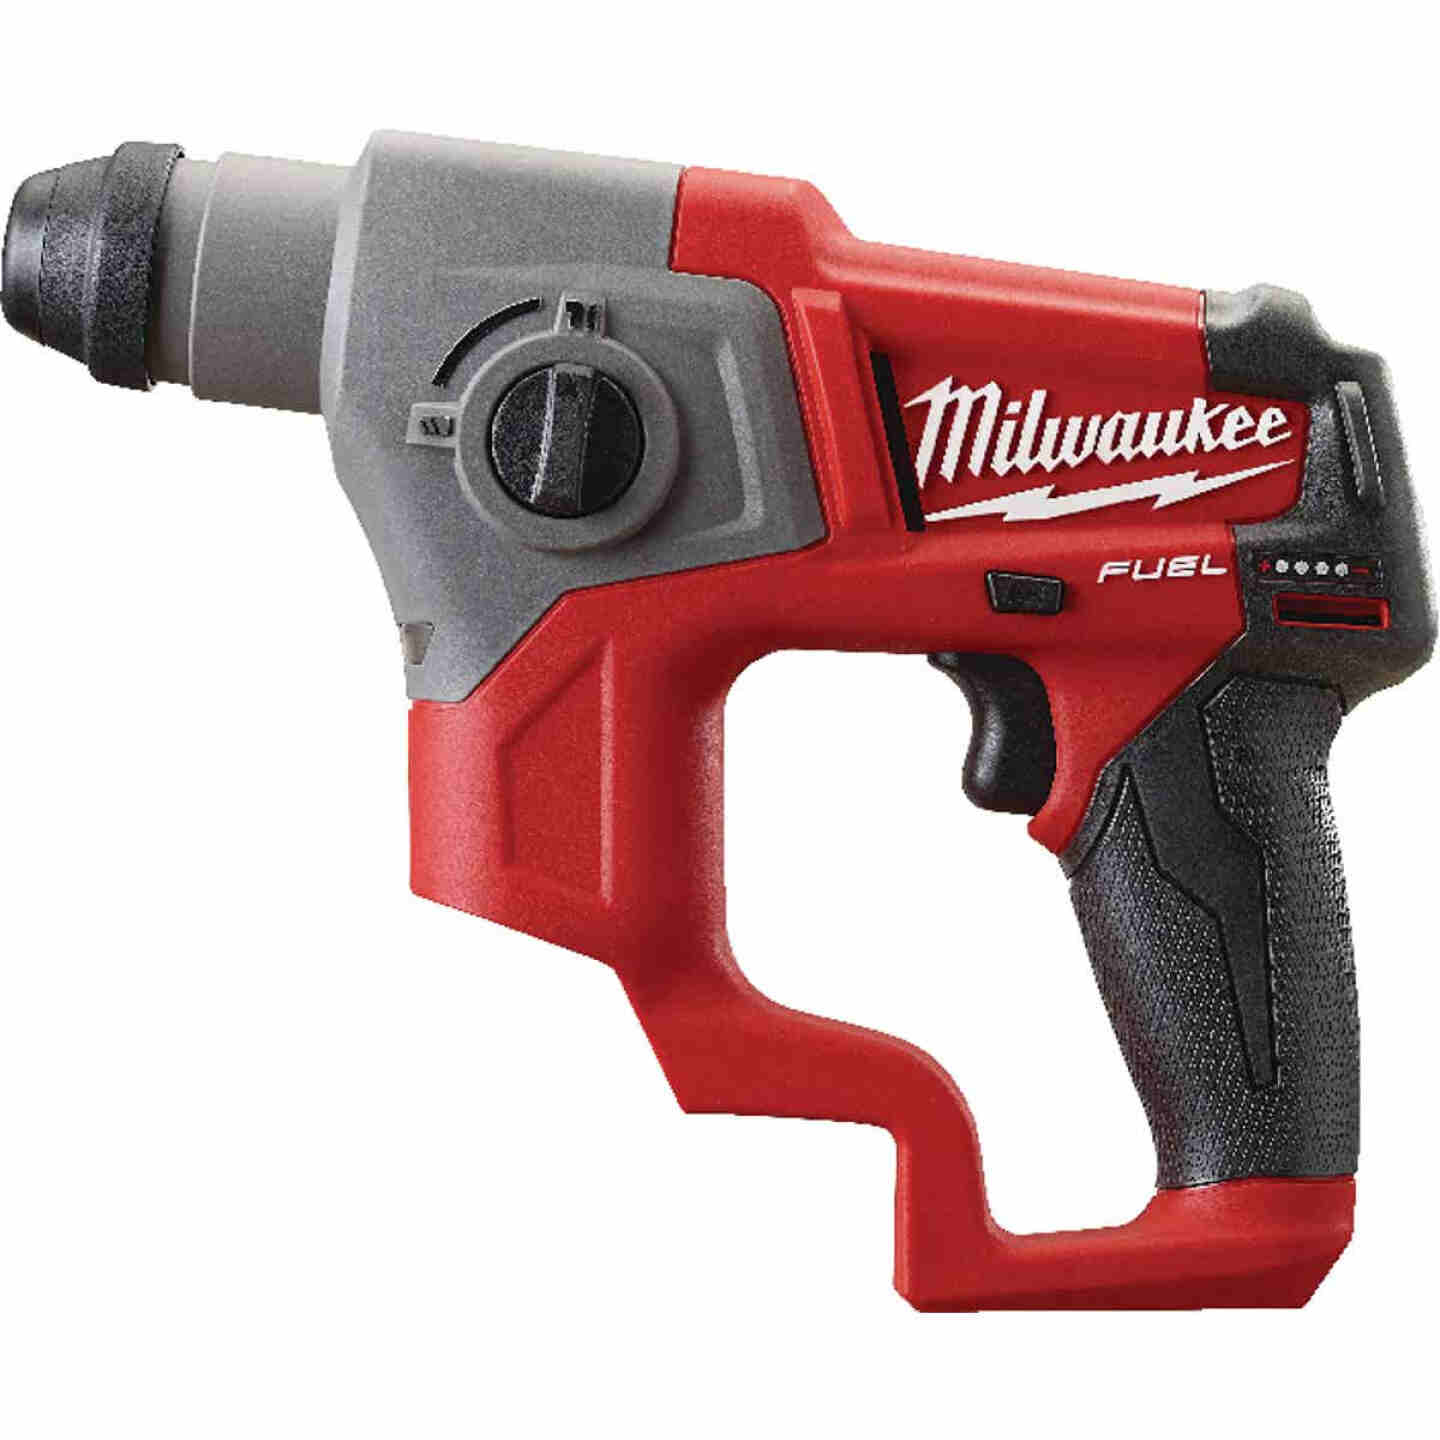 Milwaukee M12 FUEL 12 Volt Lithium-Ion Brushless 5/8 in. SDS-Plus Cordless Rotary Hammer Drill (Bare Tool) Image 1